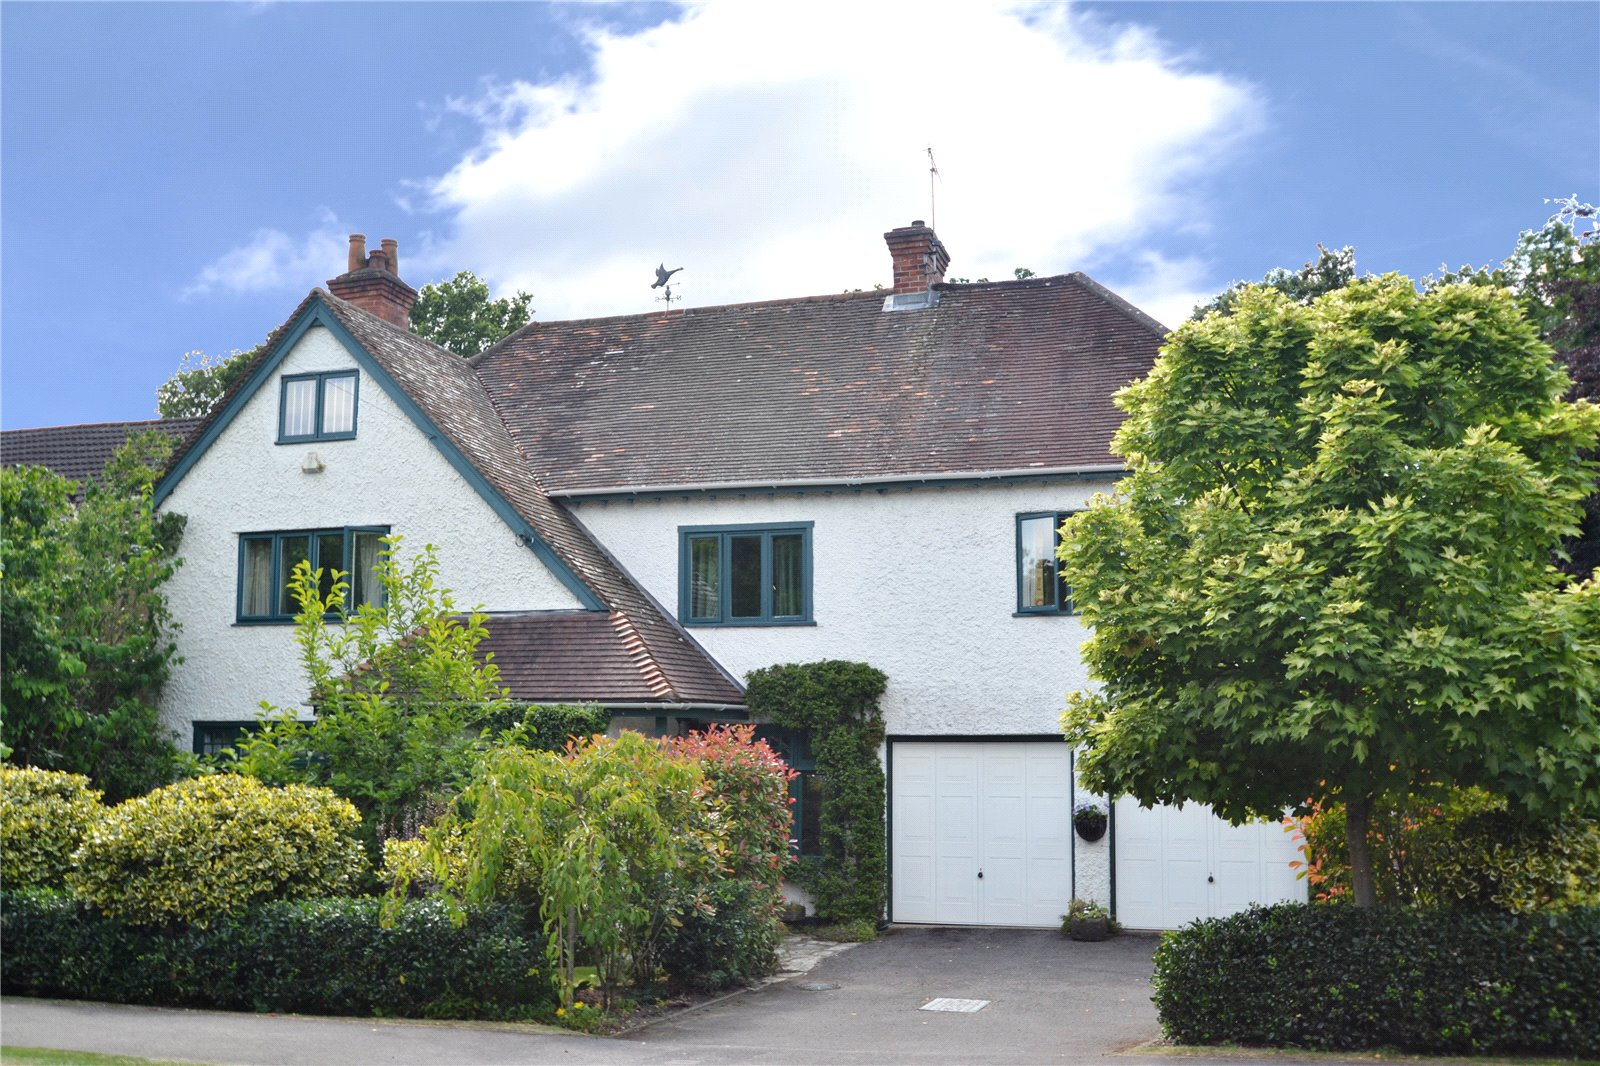 Property for sale | 5 Bedroom Detached House property in Crowthorne, Berkshire, RG45 |  |